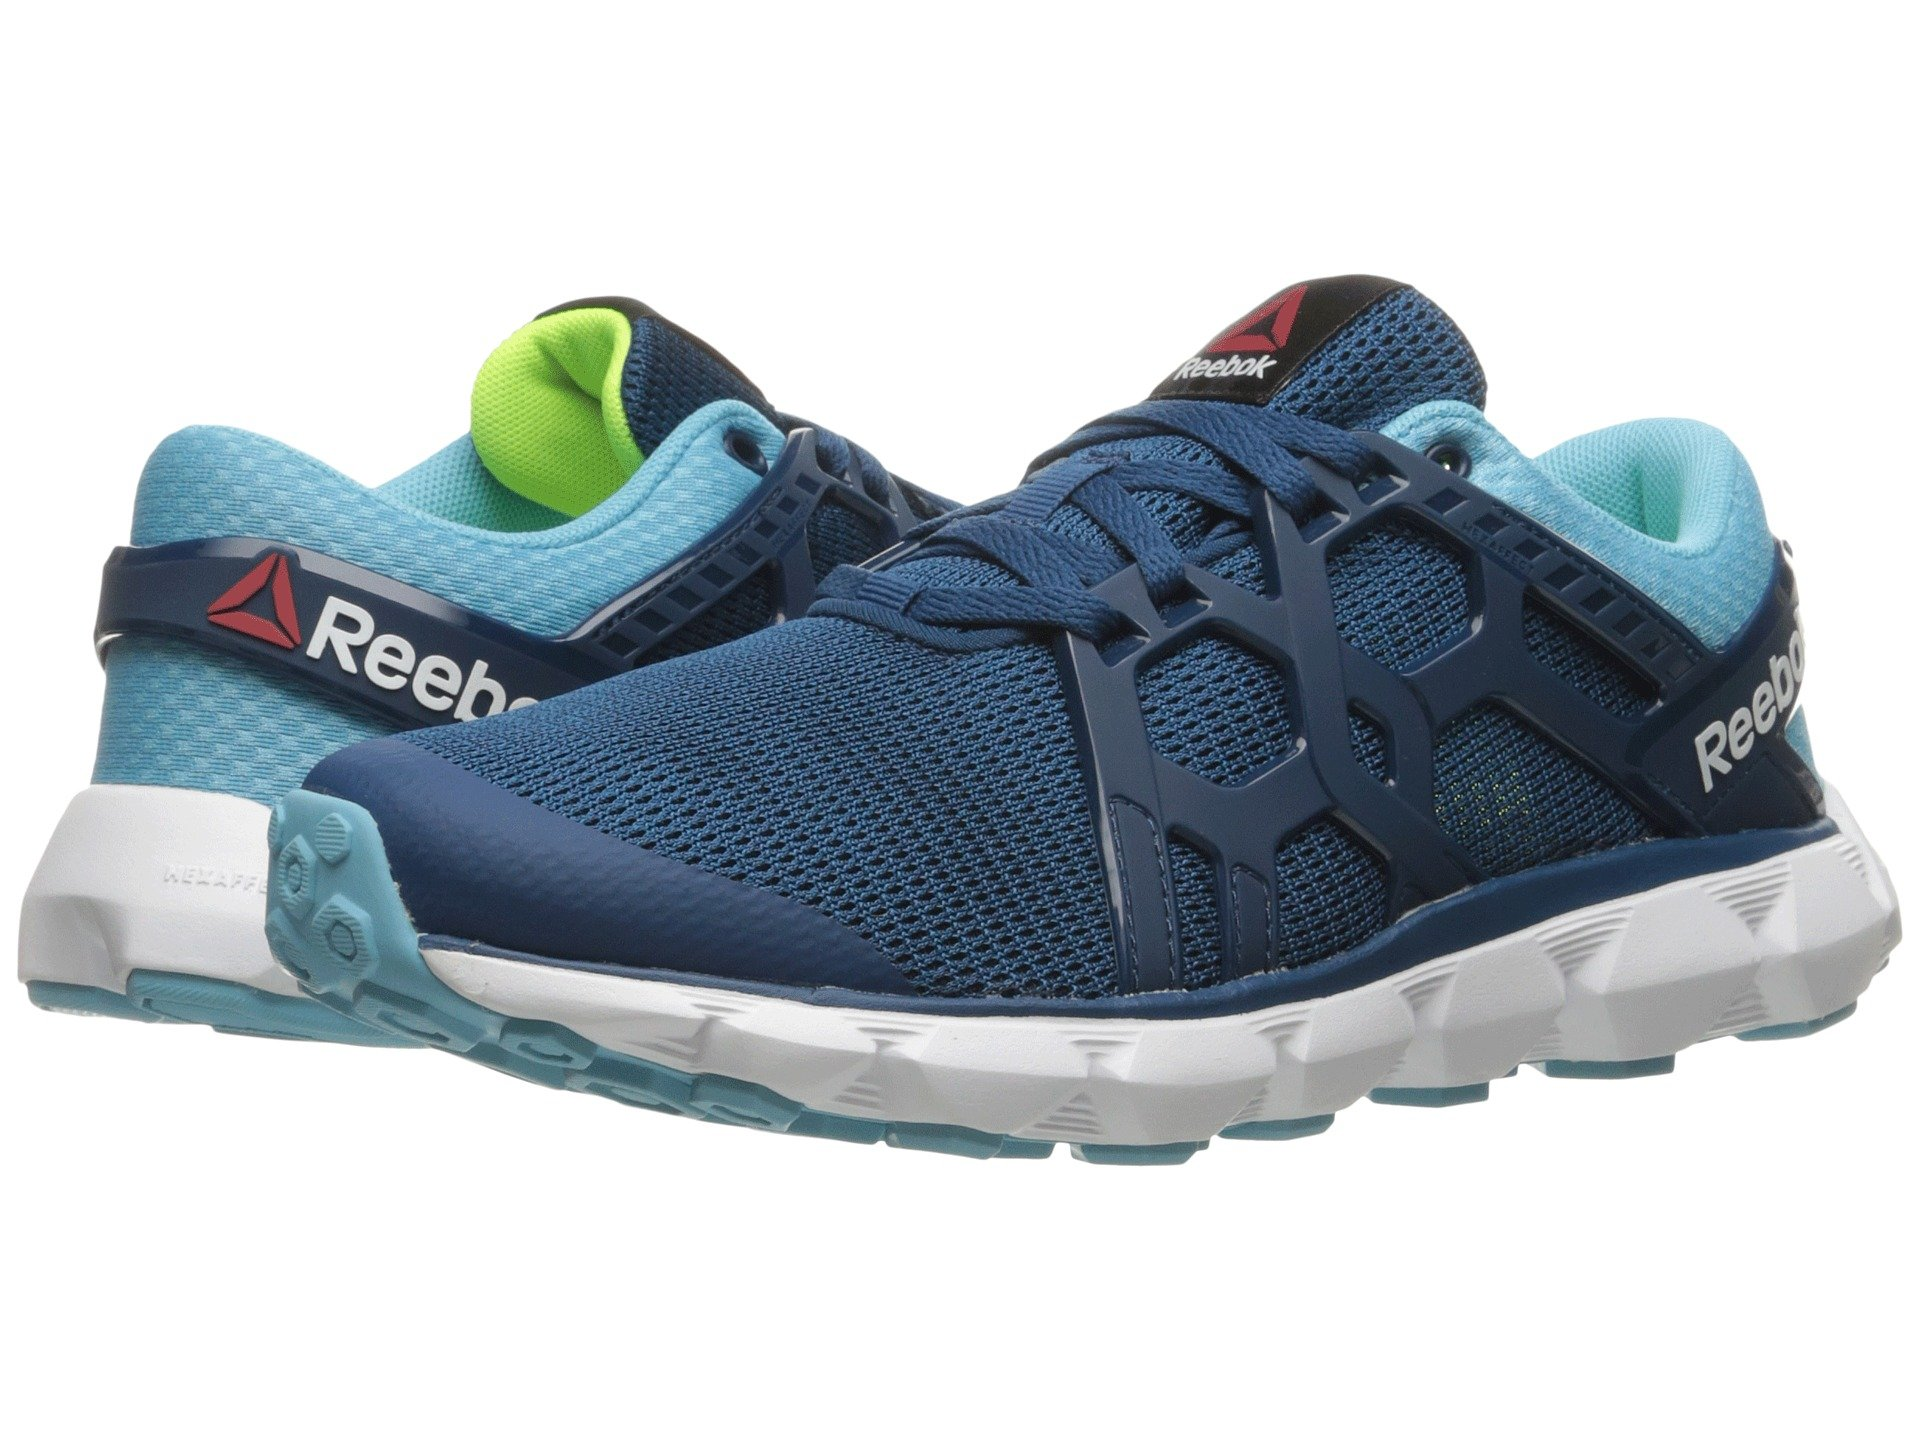 421f57b2188 Reebok Hexaffect Run 4.0 Mtm In Noble Blue Crisp Blue White Solar Yellow